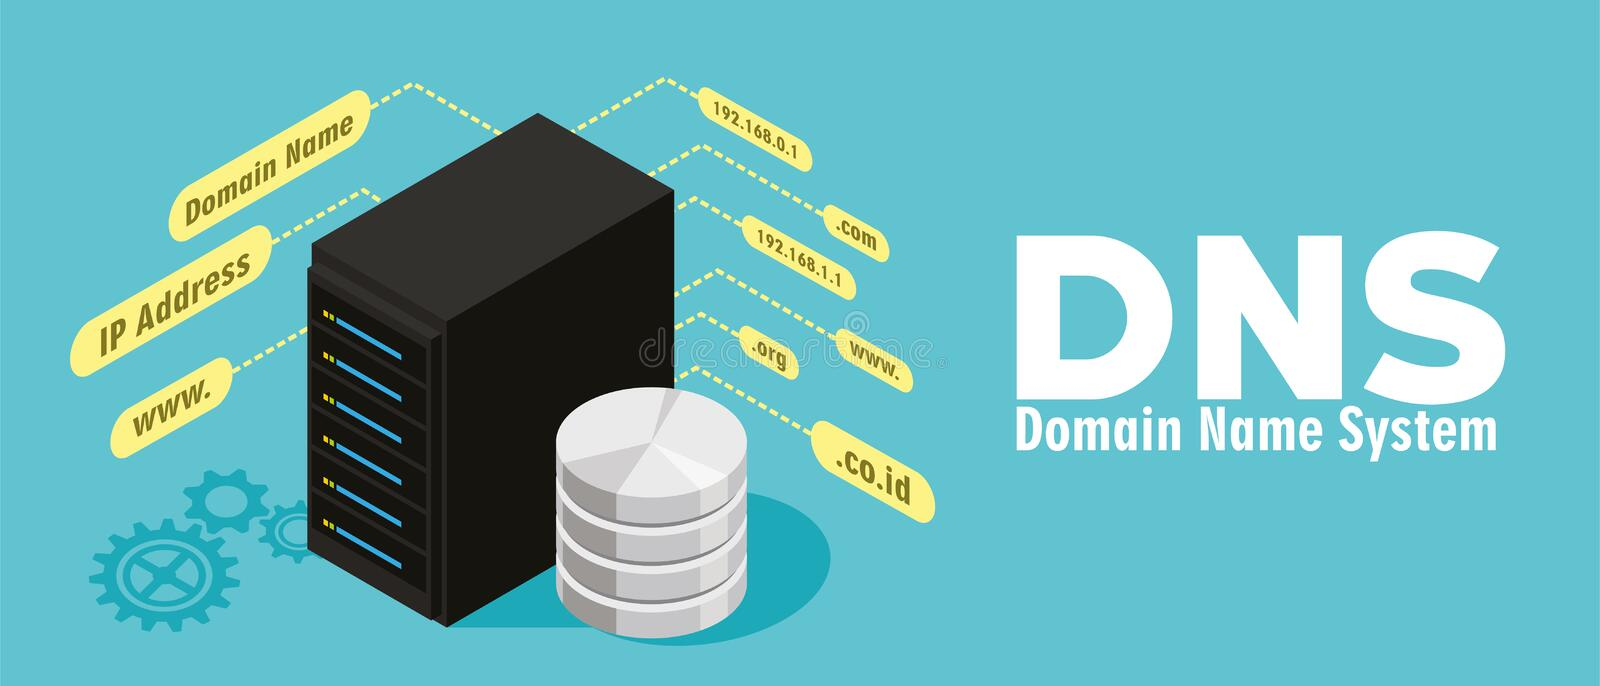 Server di Domain Name System del DNS illustrazione vettoriale